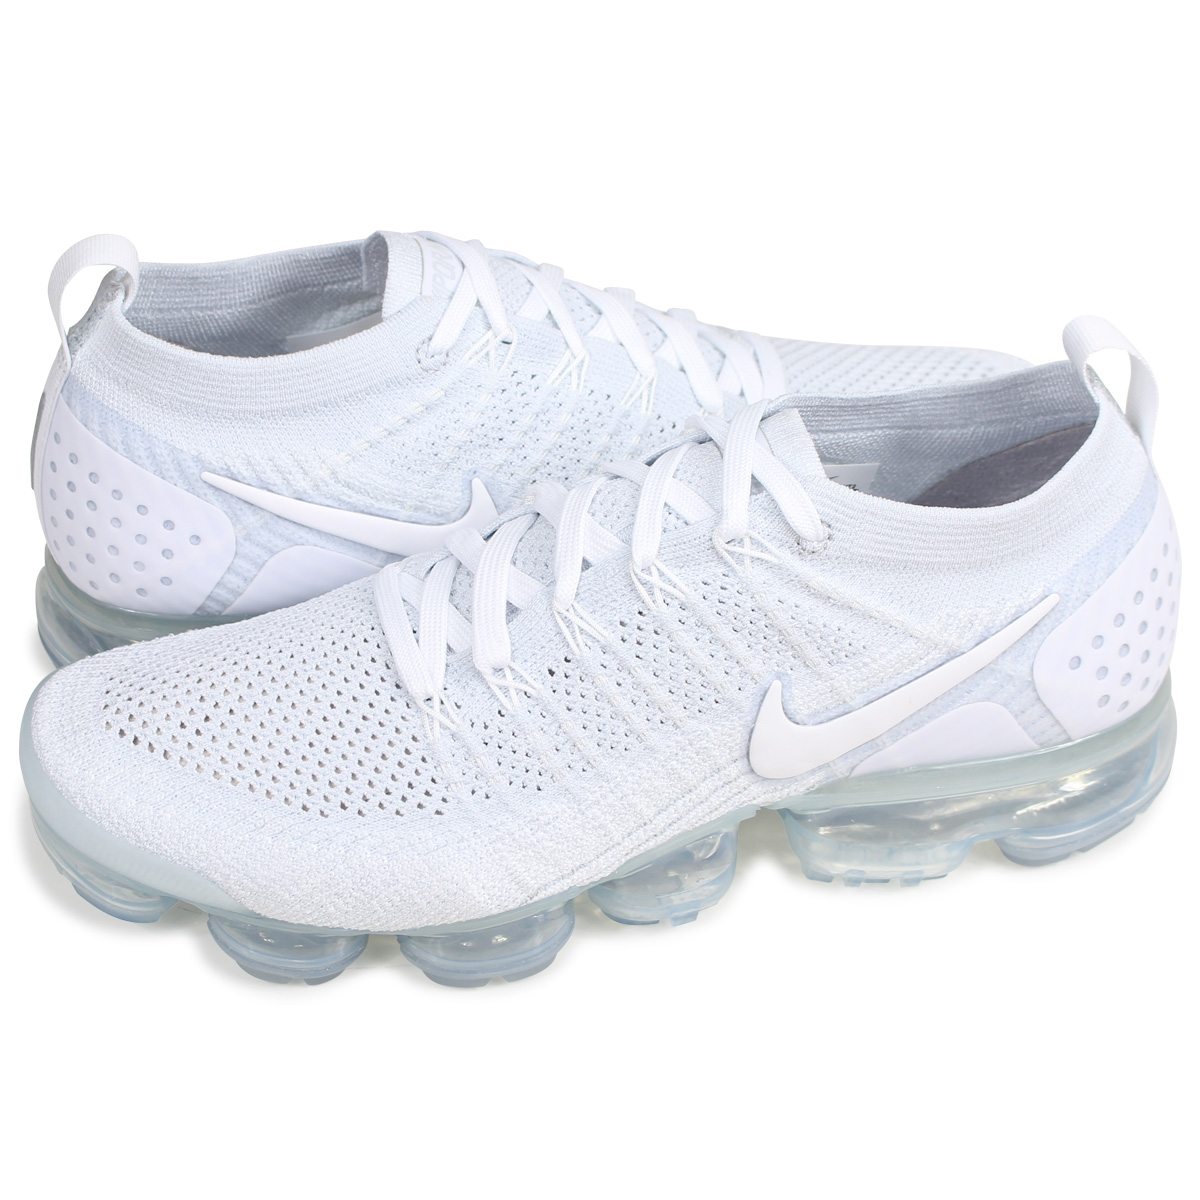 27b95b196bab7 NIKE AIR VAPORMAX FLYKNIT 2 Nike air vapor max fried food knit 2 sneakers  men 942